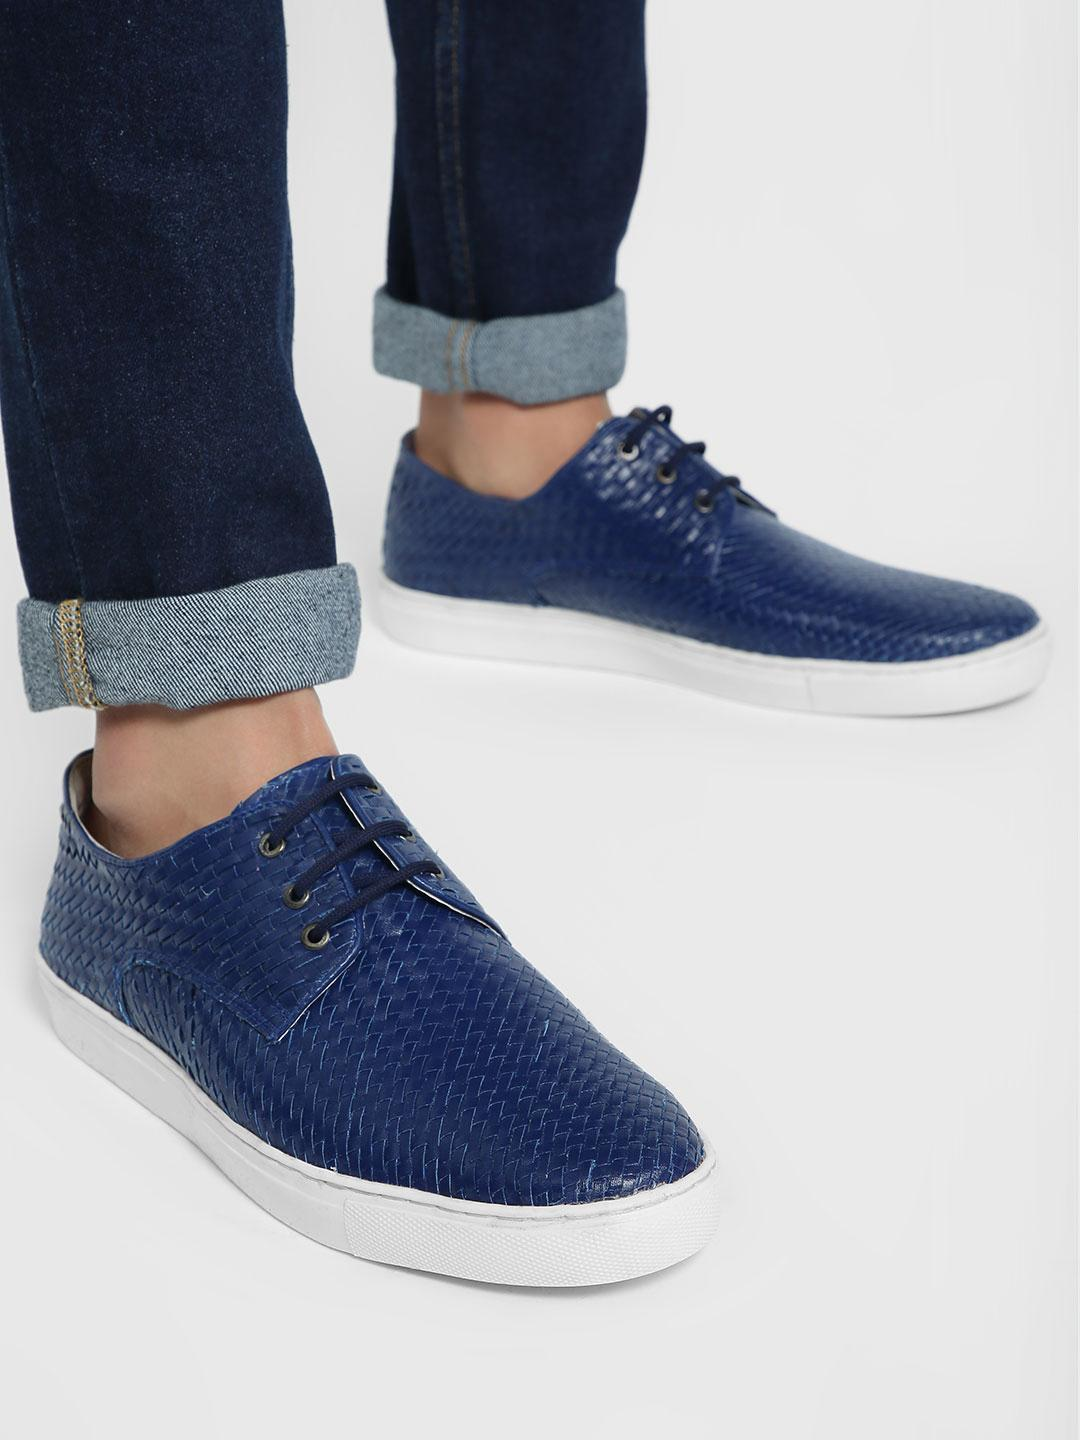 Bolt Of The Good Stuff Blue Handwoven Lace-Up Casual Shoes 1